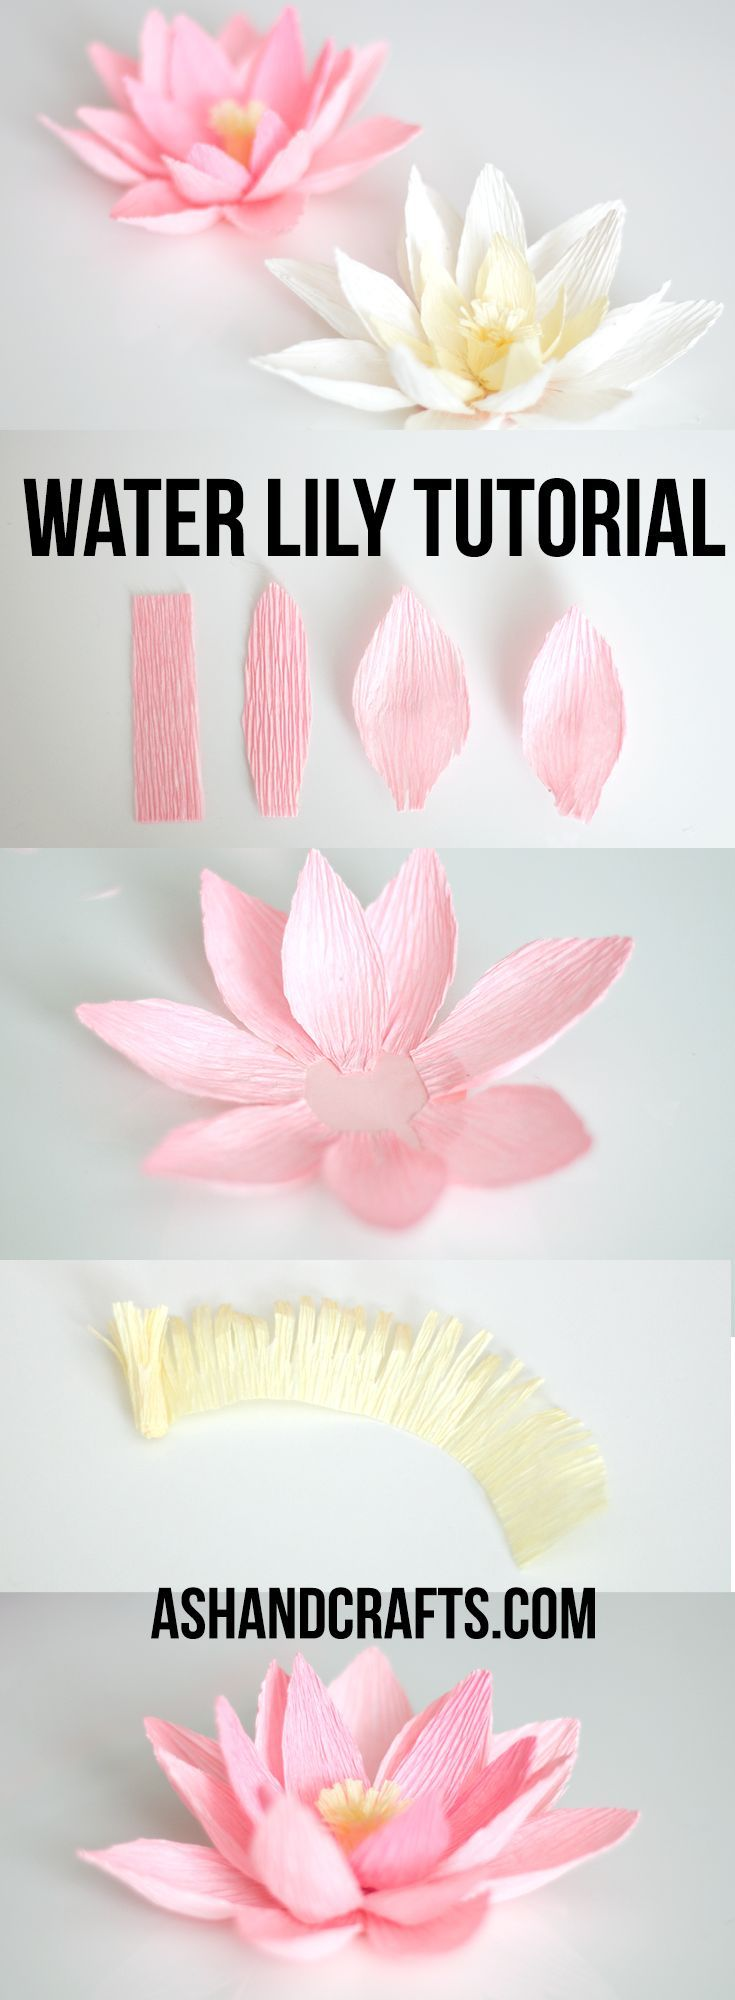 →DIY & Crafts← ♦dAǸ†㉫♦ Crepe Paper Water Lily Tutorial | ashandcrafts.com